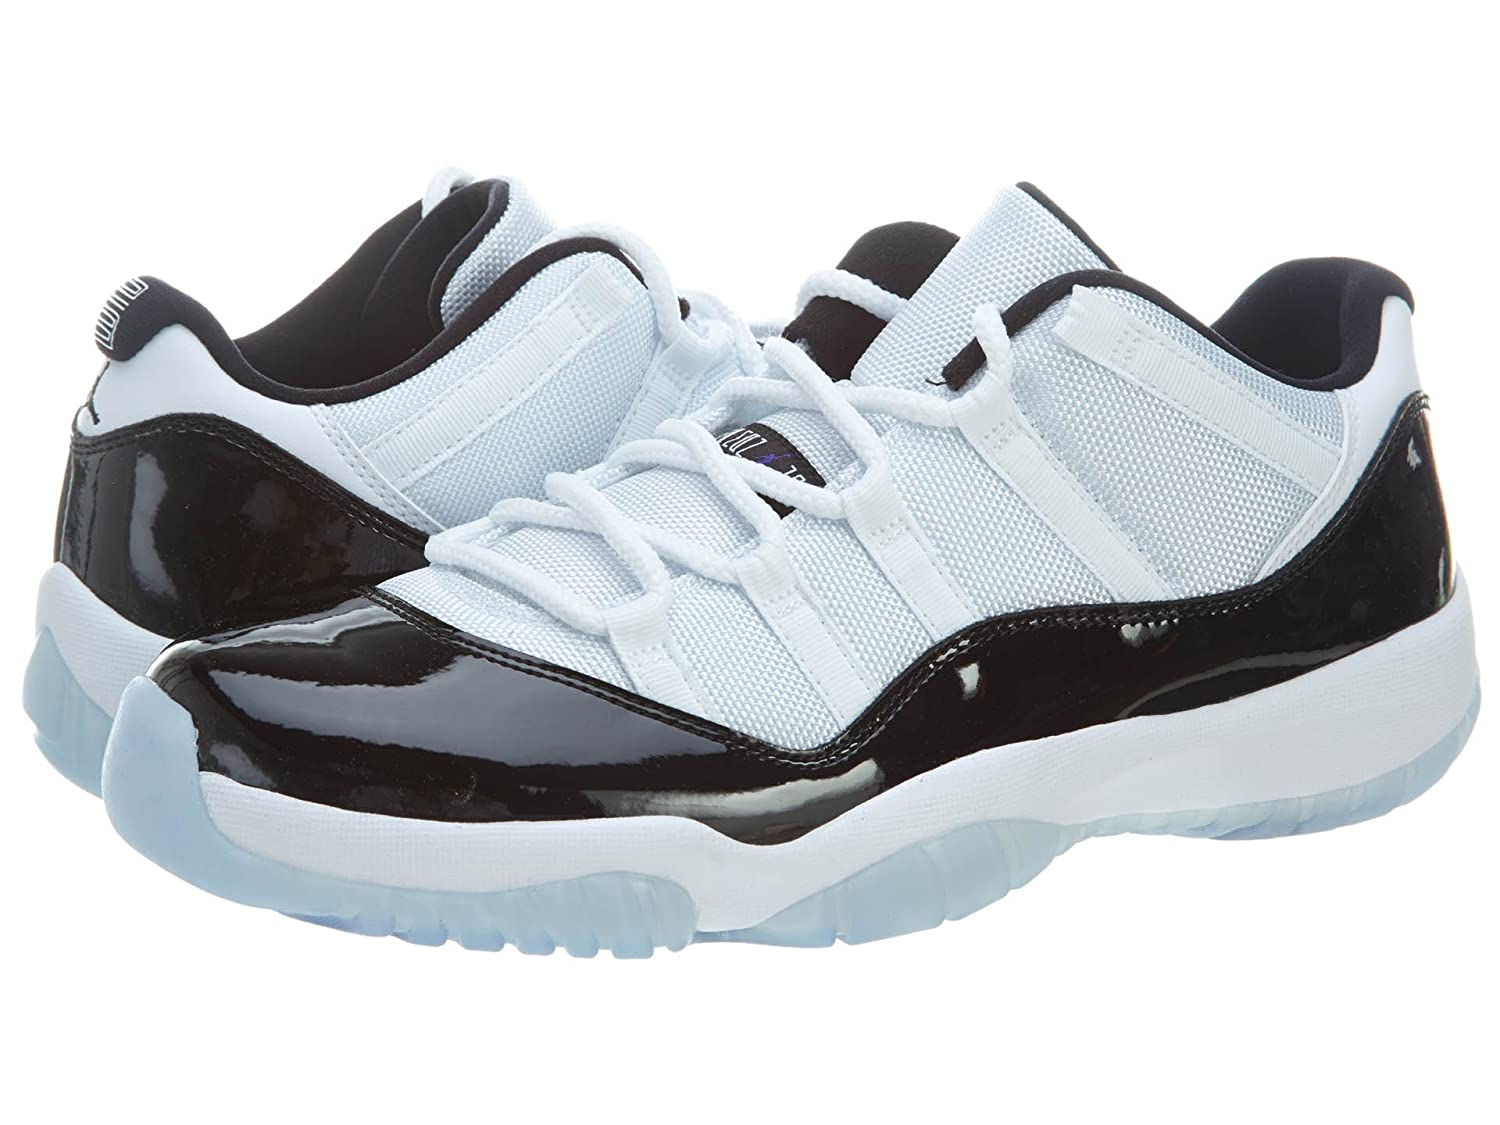 jordan retro 11 mens white